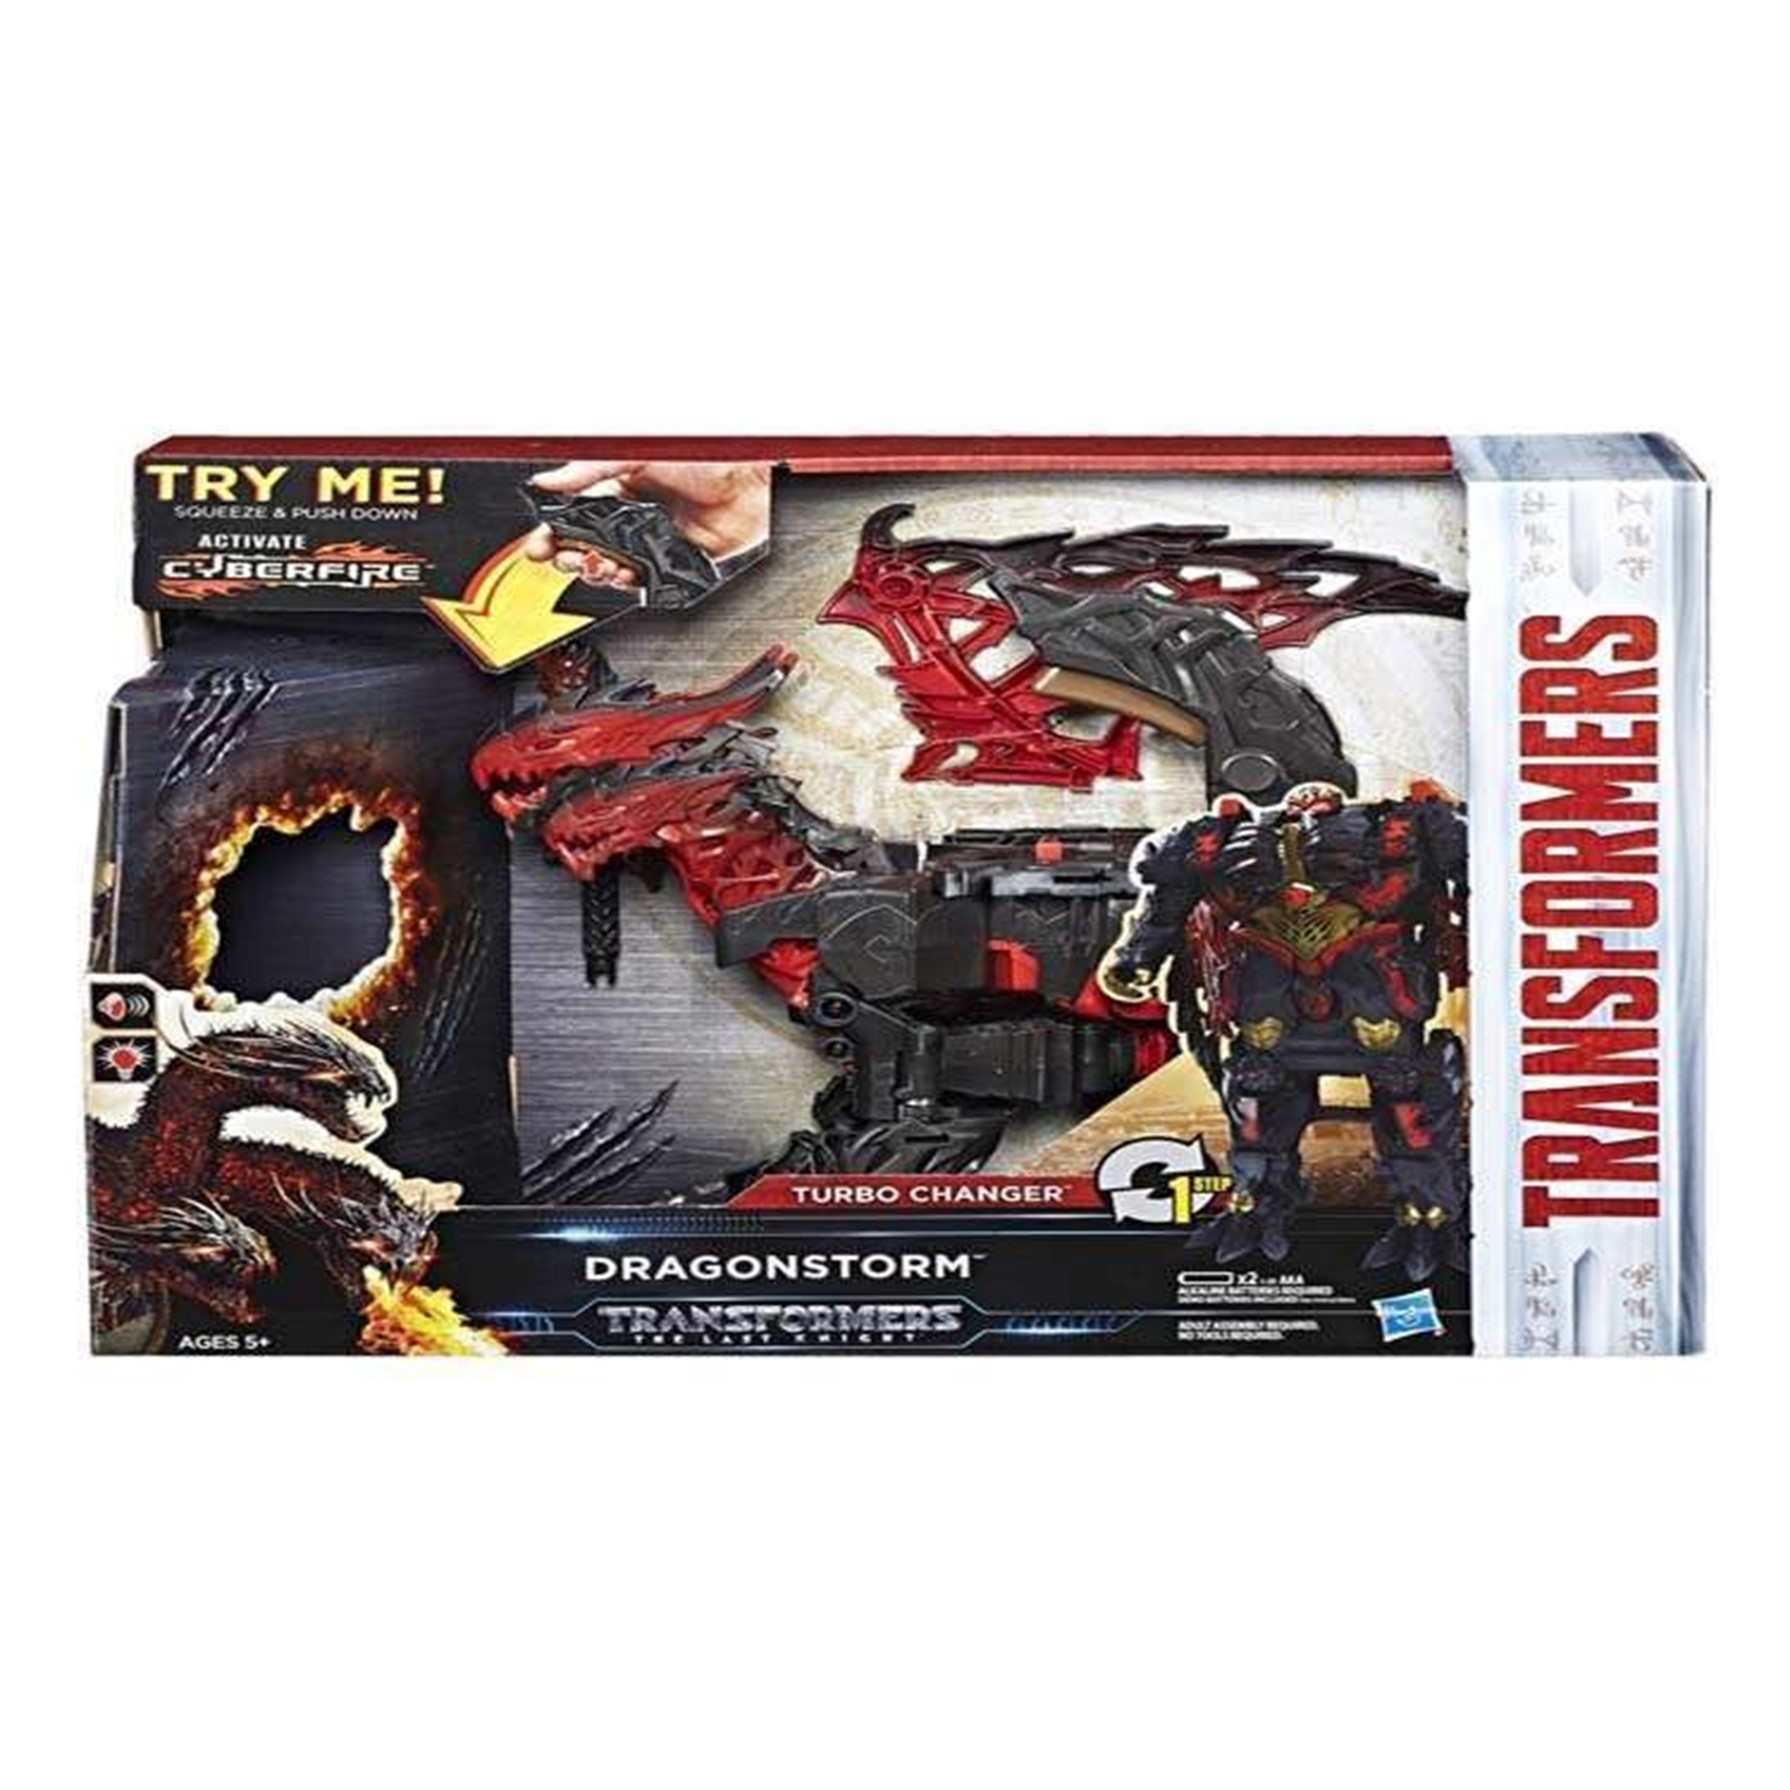 Transformers 5 Turbo Change Dragon